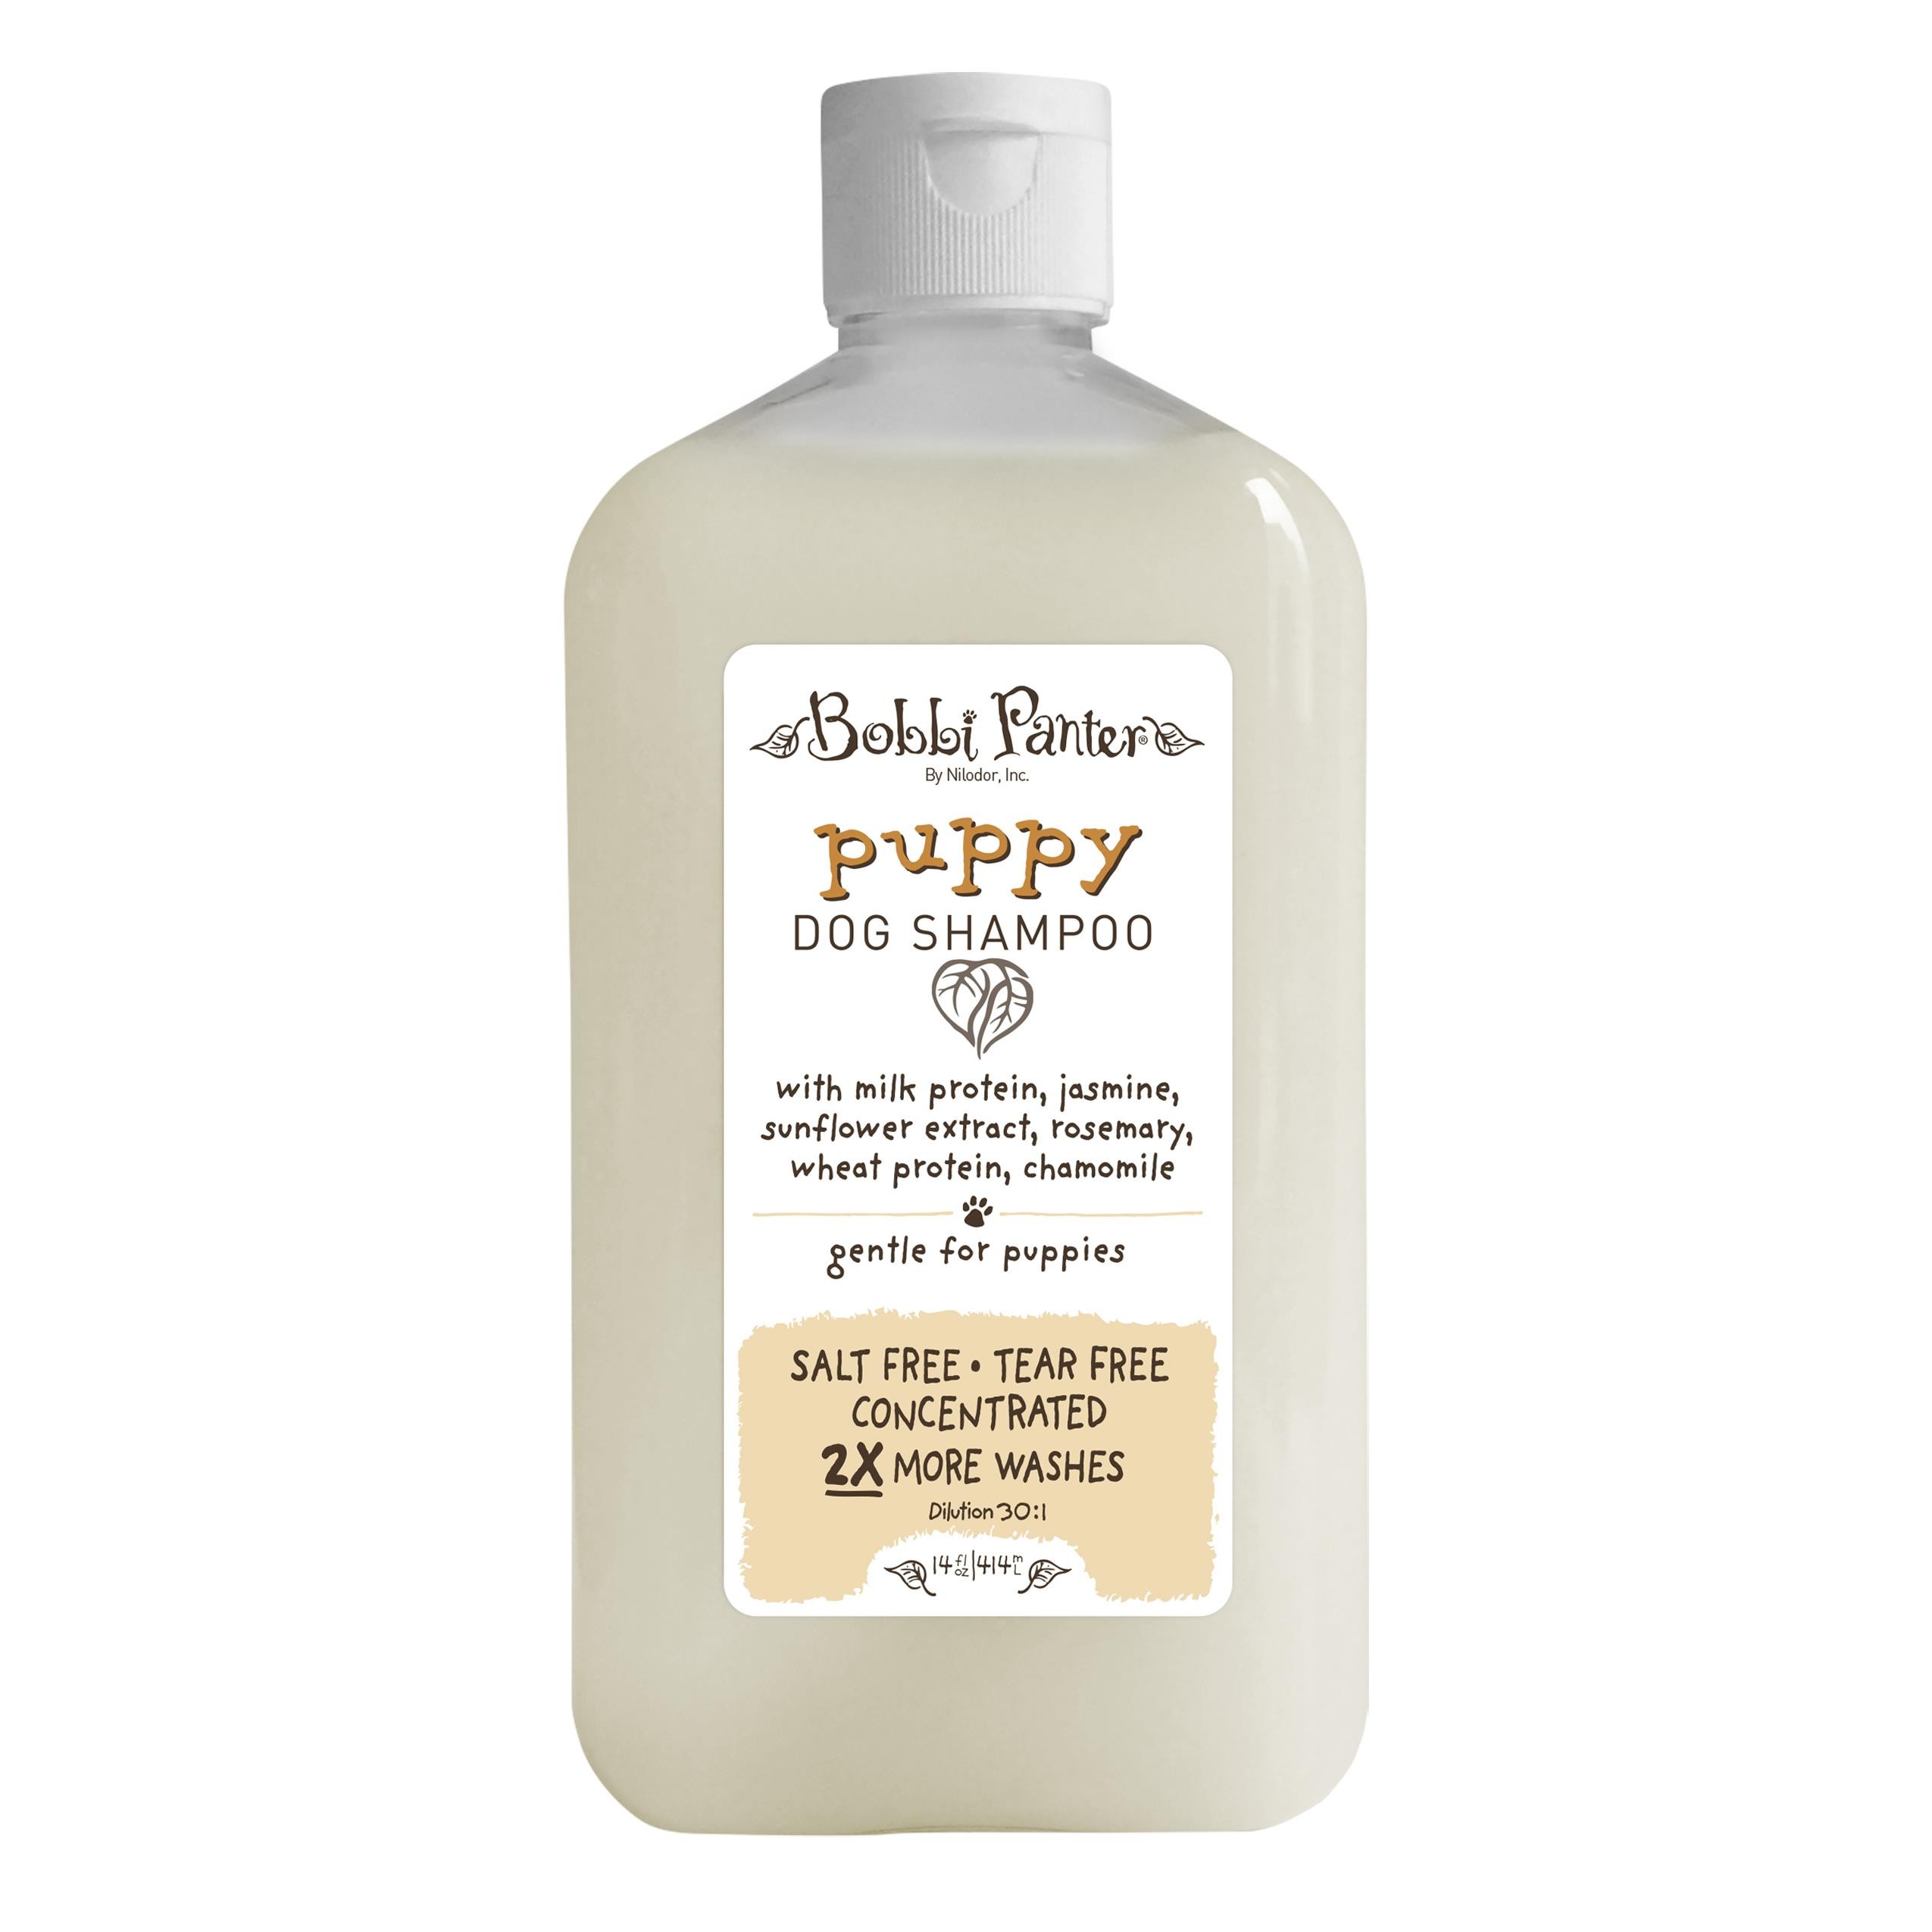 Bobbi Panter Puppy Dog Shampoo